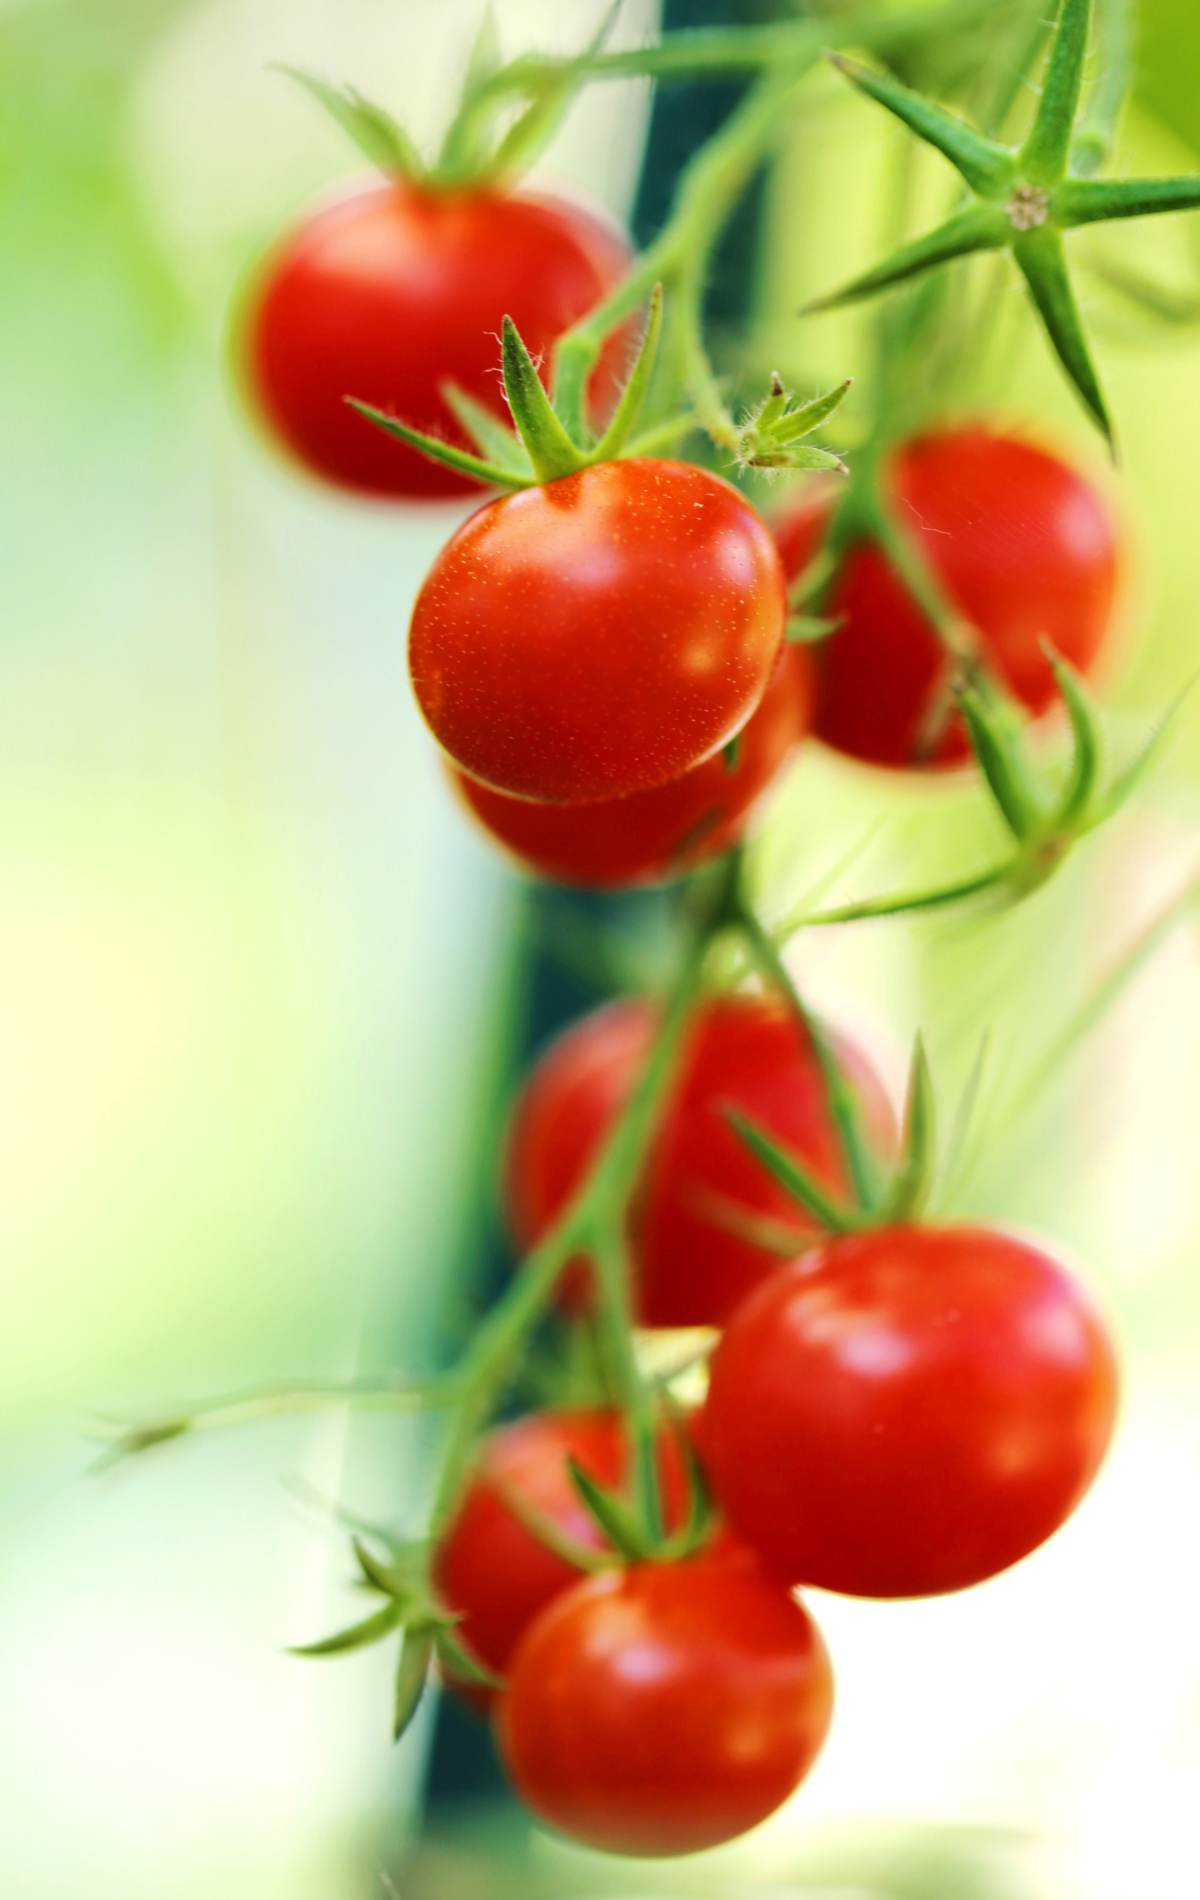 Cherry tomatoes growing on the plant.